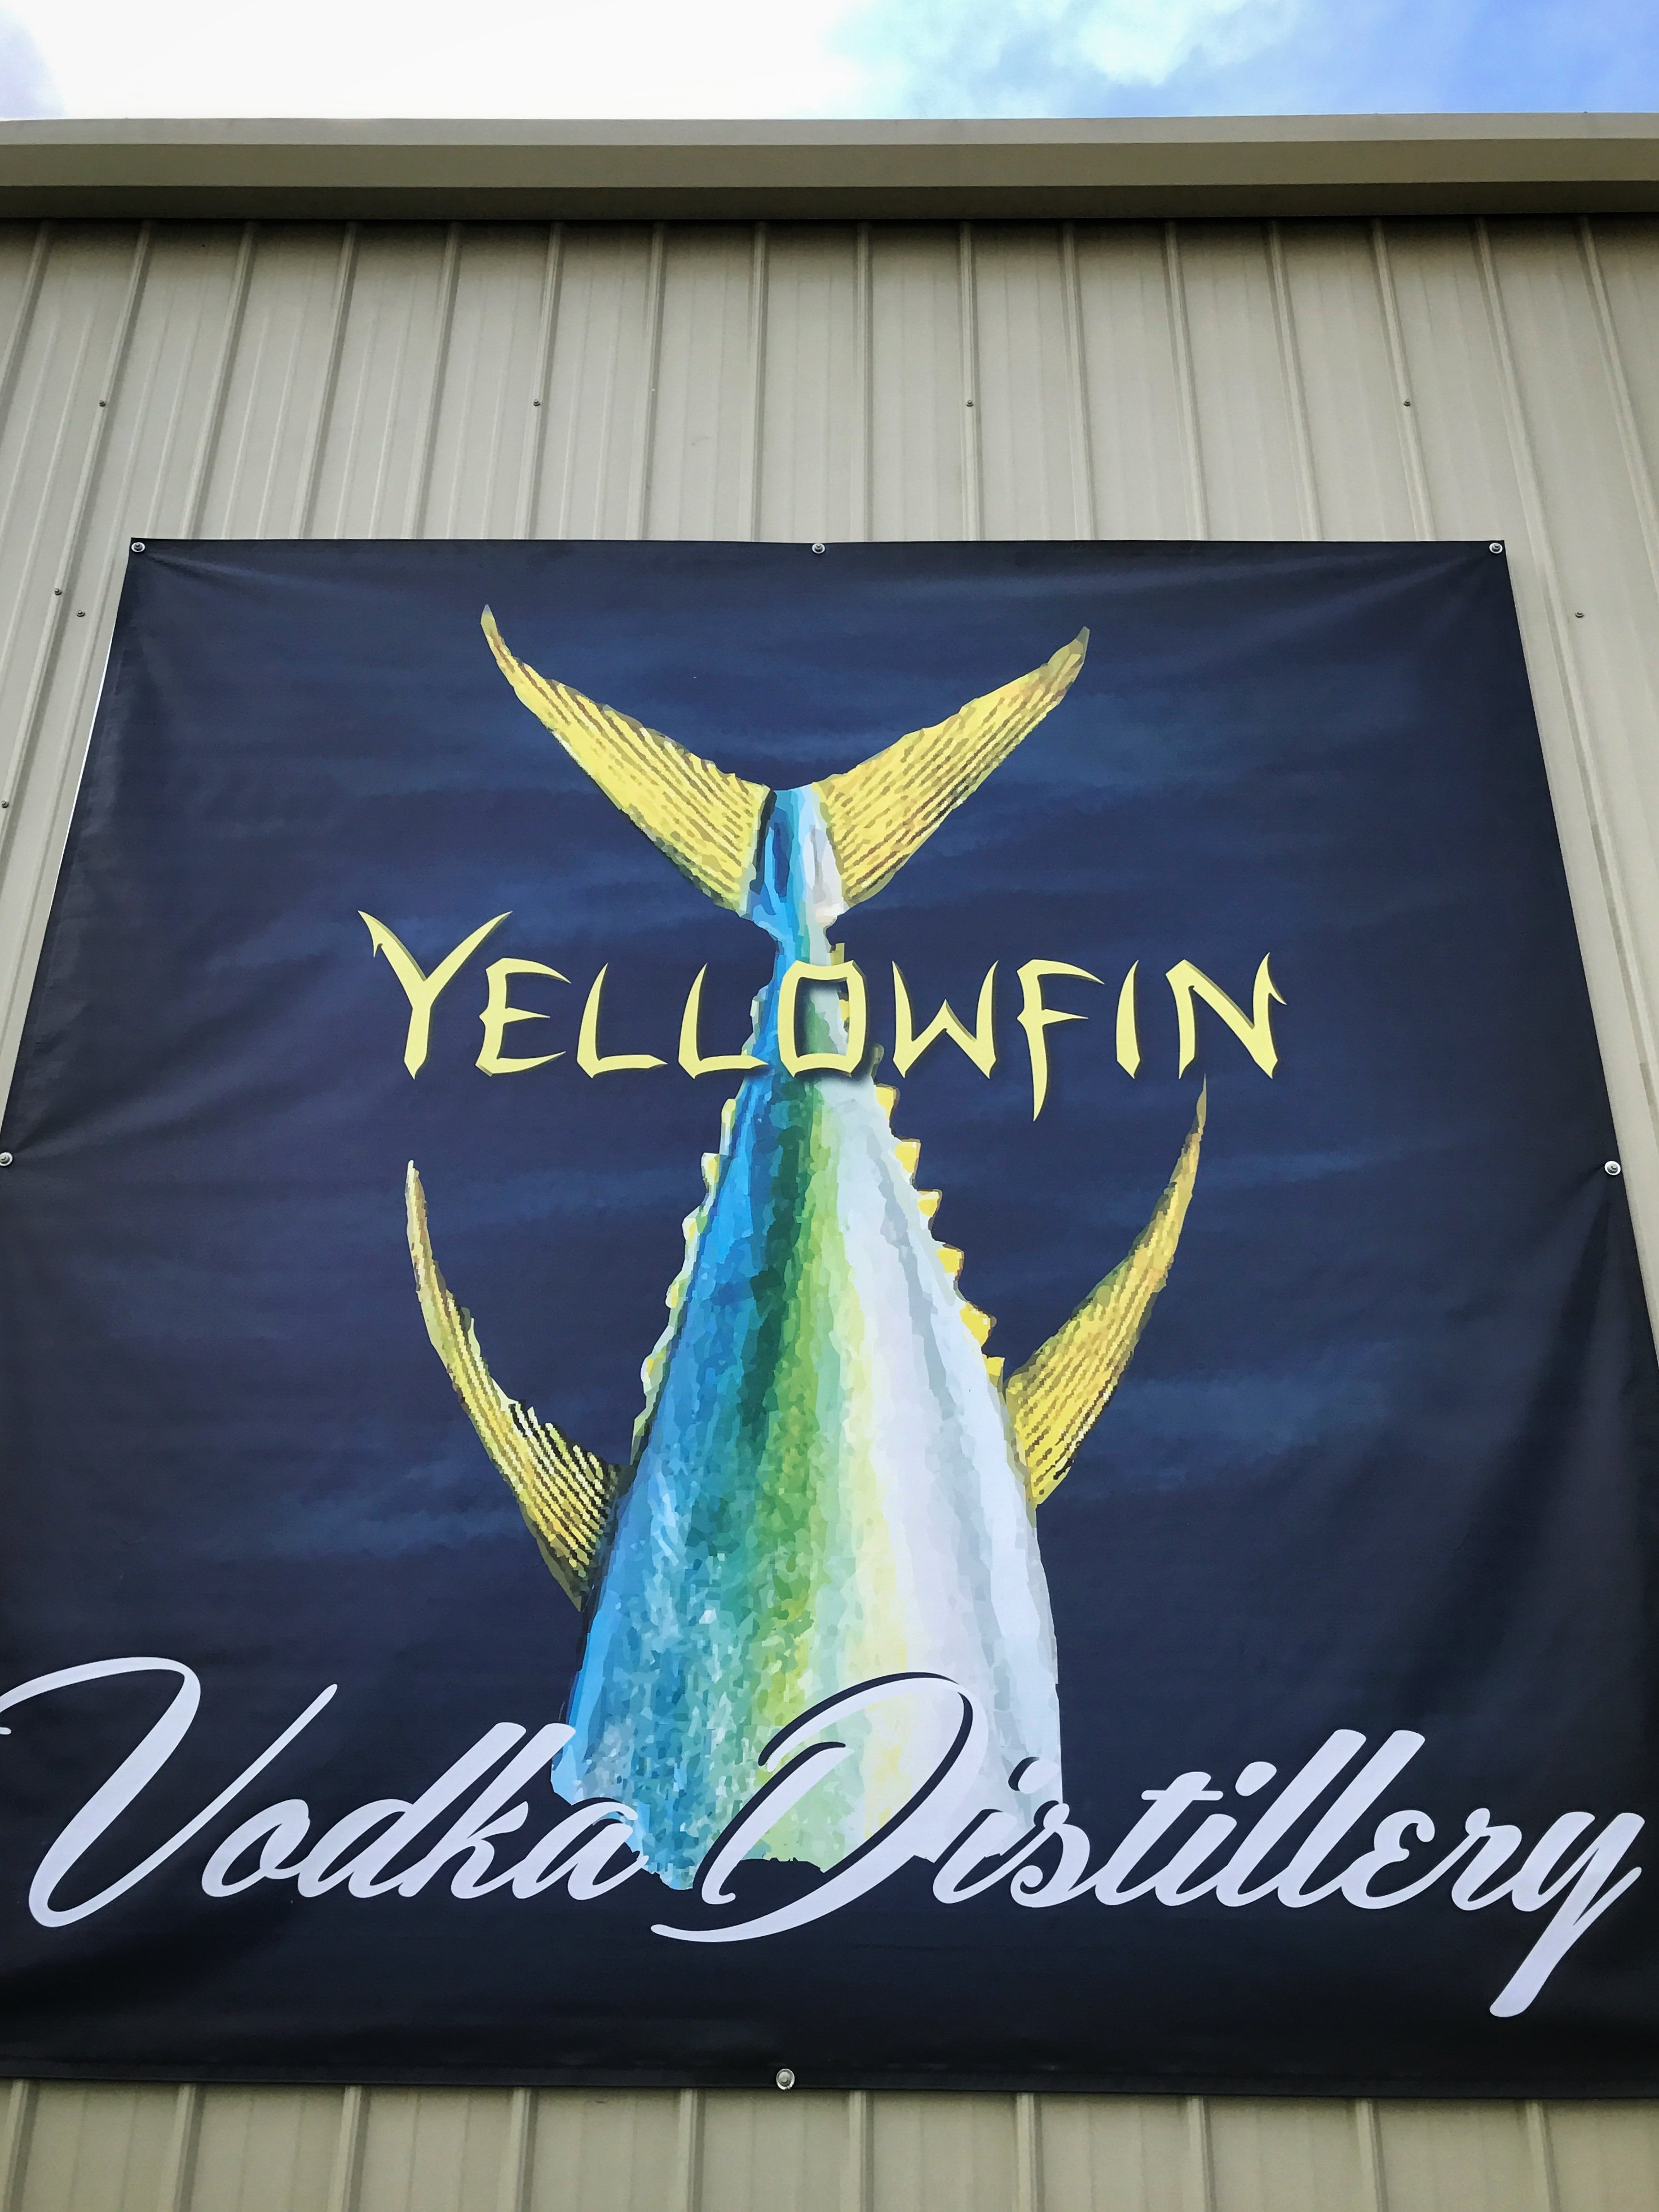 Why You Need Yellowfin Vodka In Your Bar and How To Get It